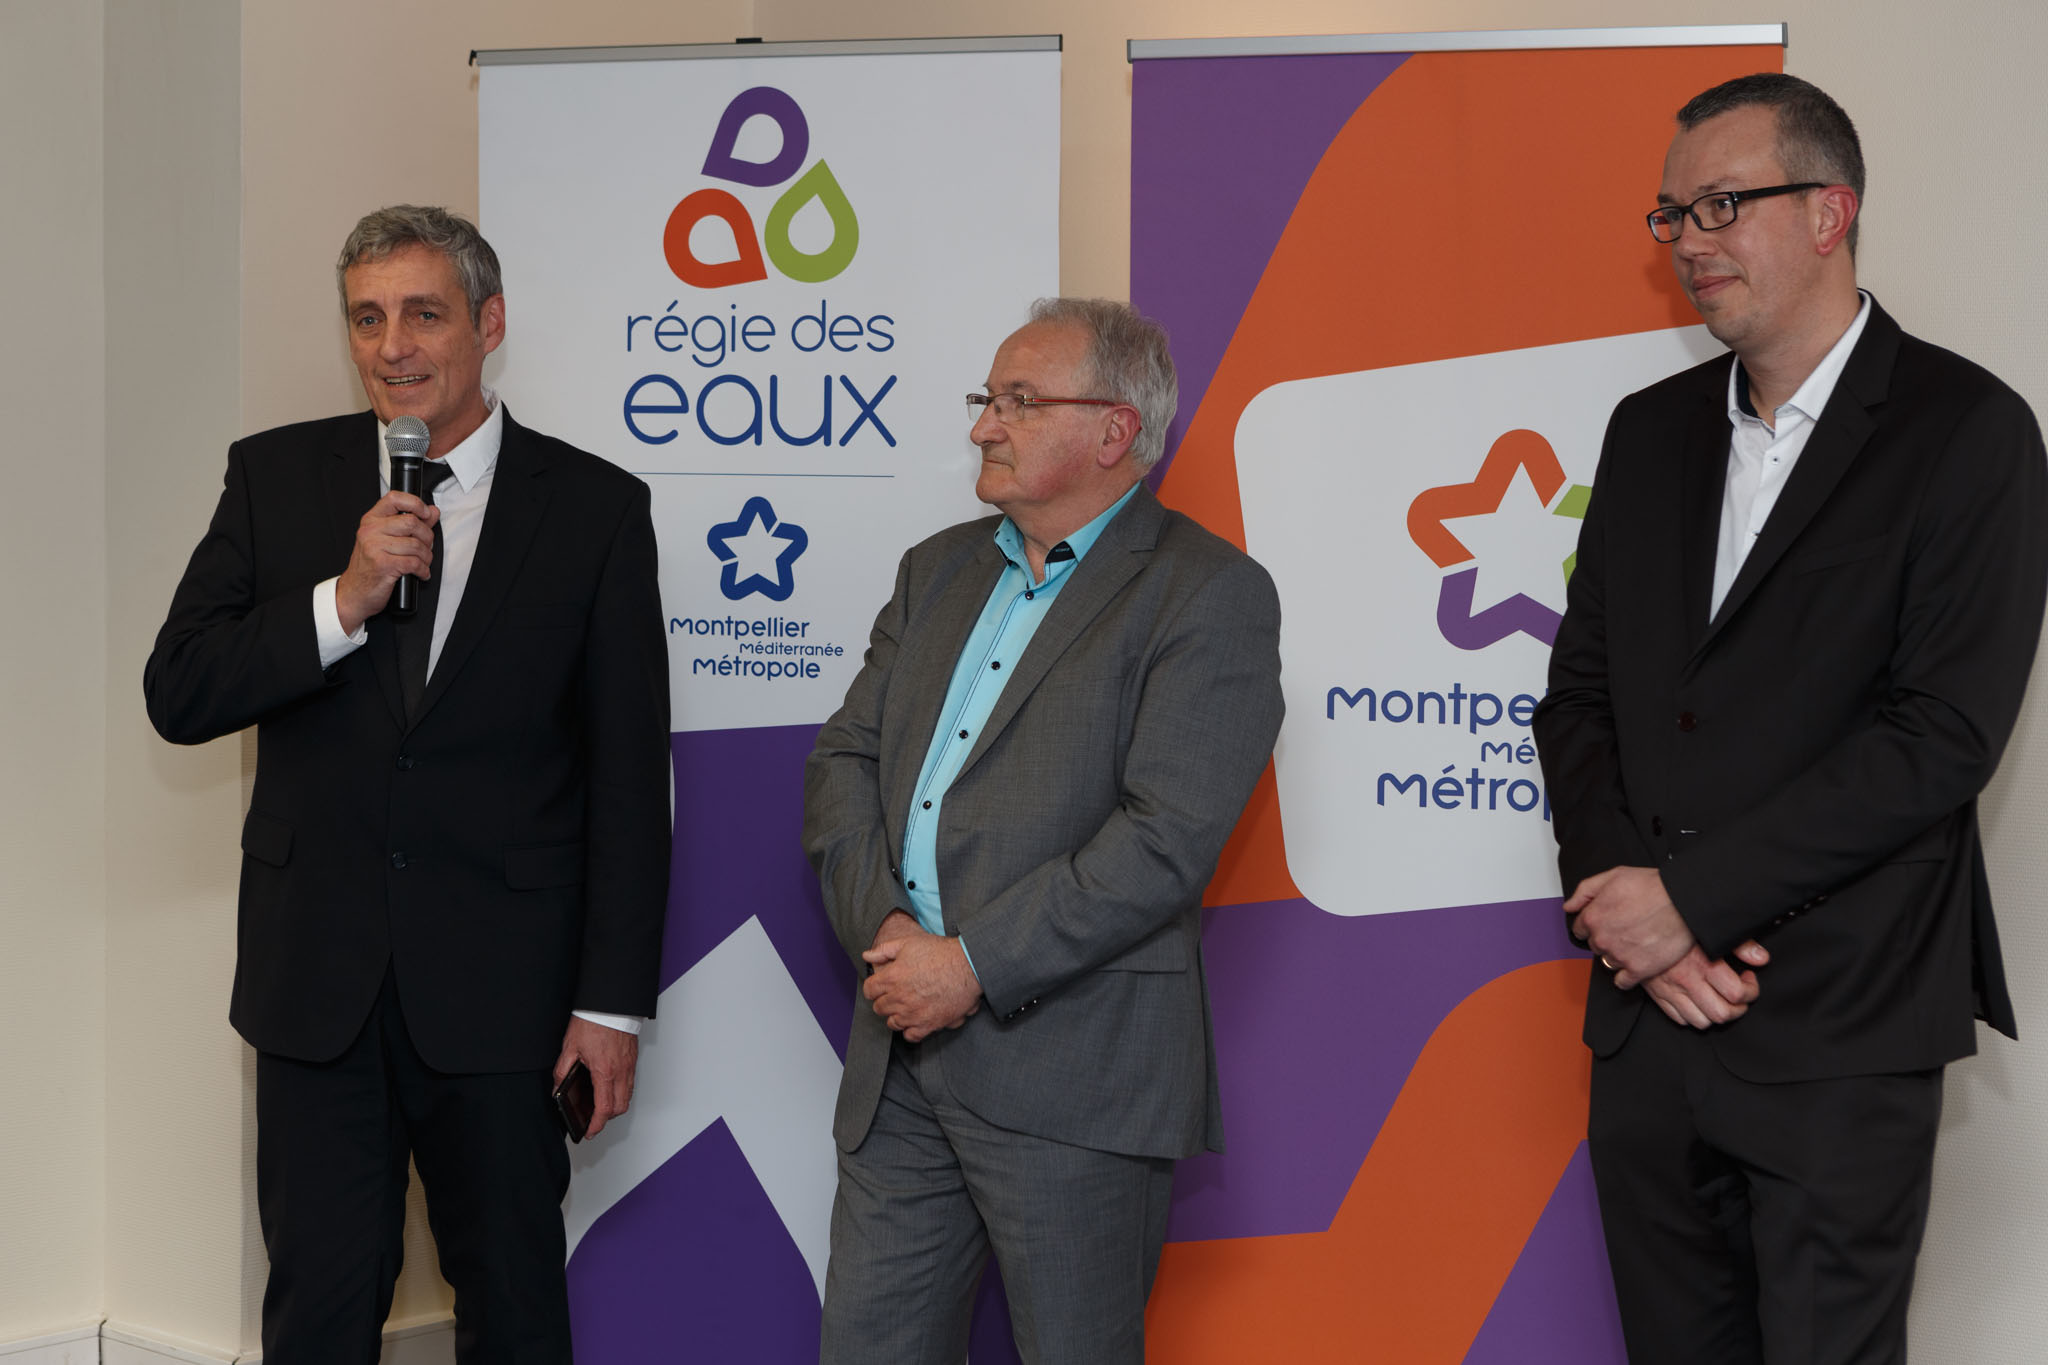 Rencontres amicales montpellier